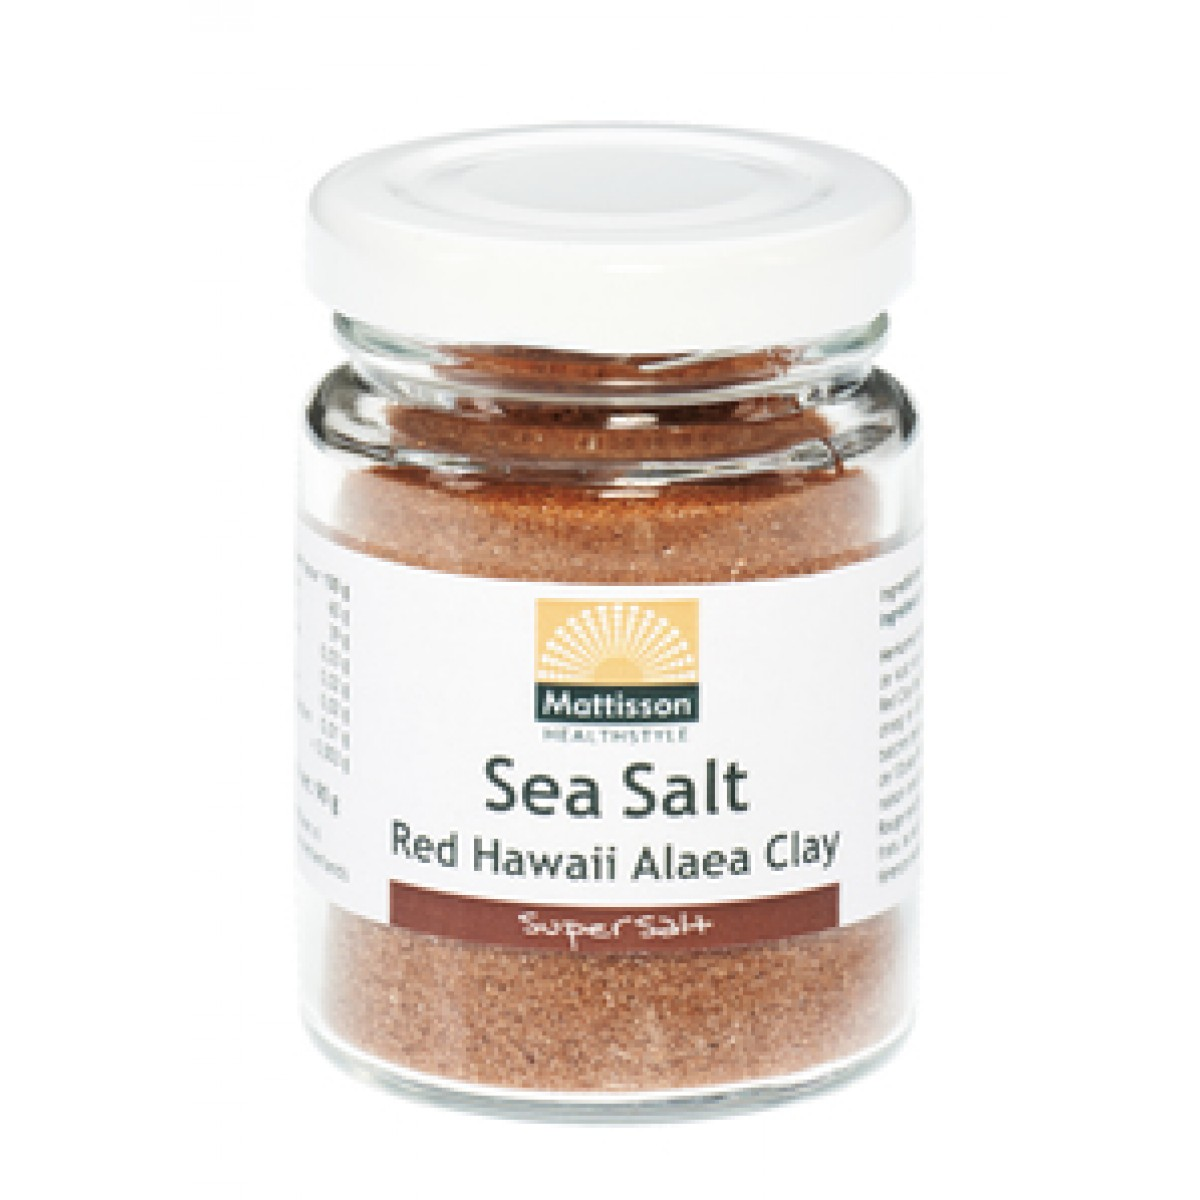 Sea Salt Red Hawaii Alaea Clay